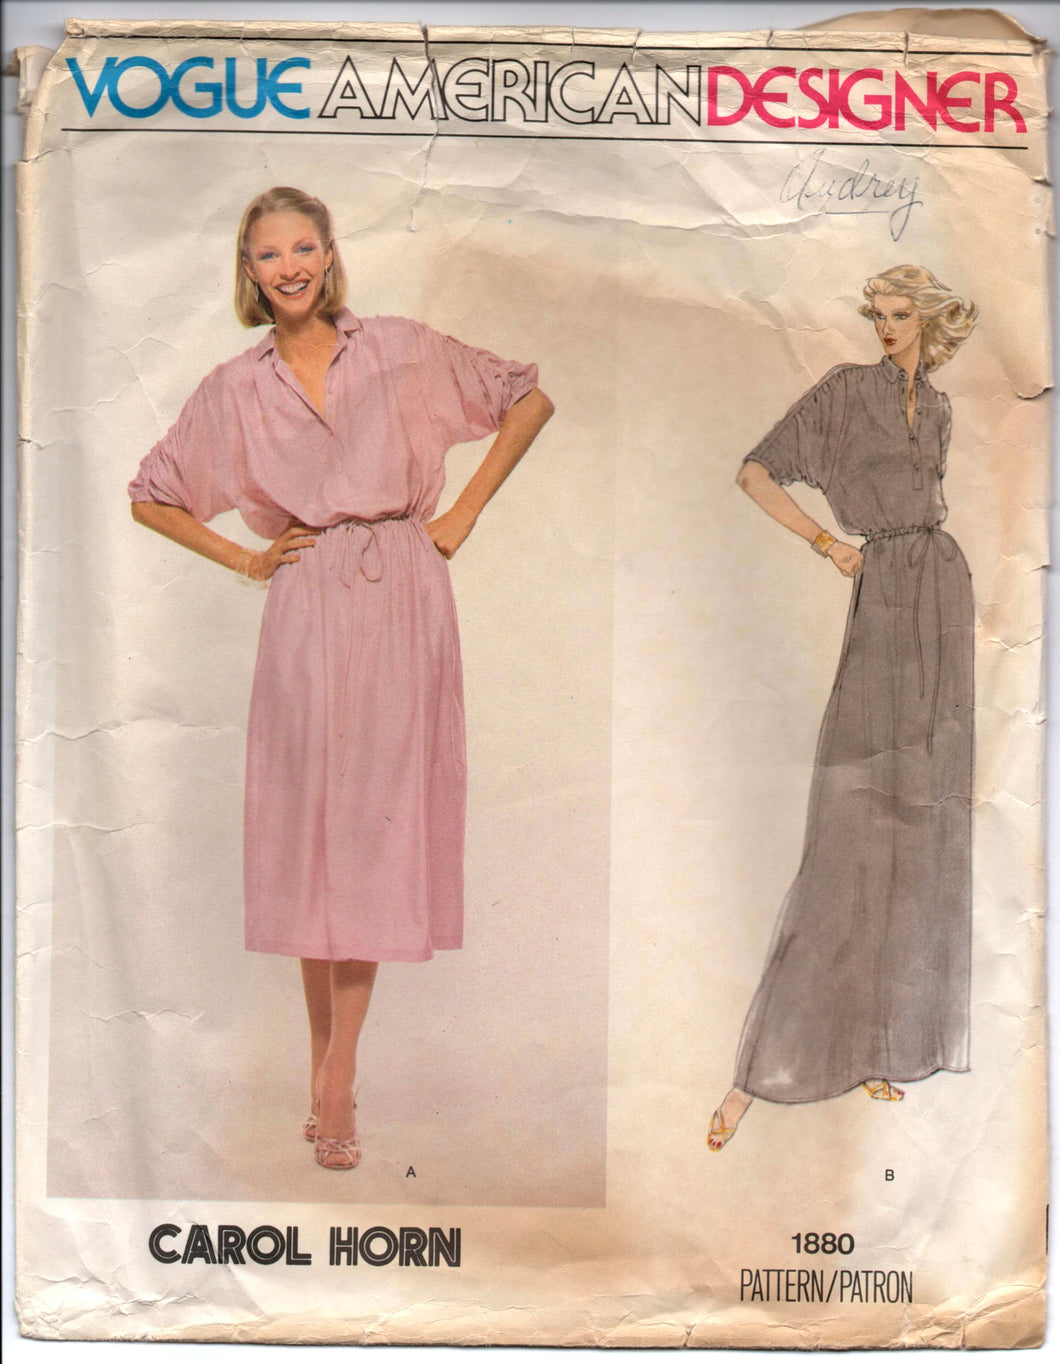 1970's Vogue American Designer Maxi or Day Dress with Button up collar and tie waist pattern - Carol Horn - Bust 36